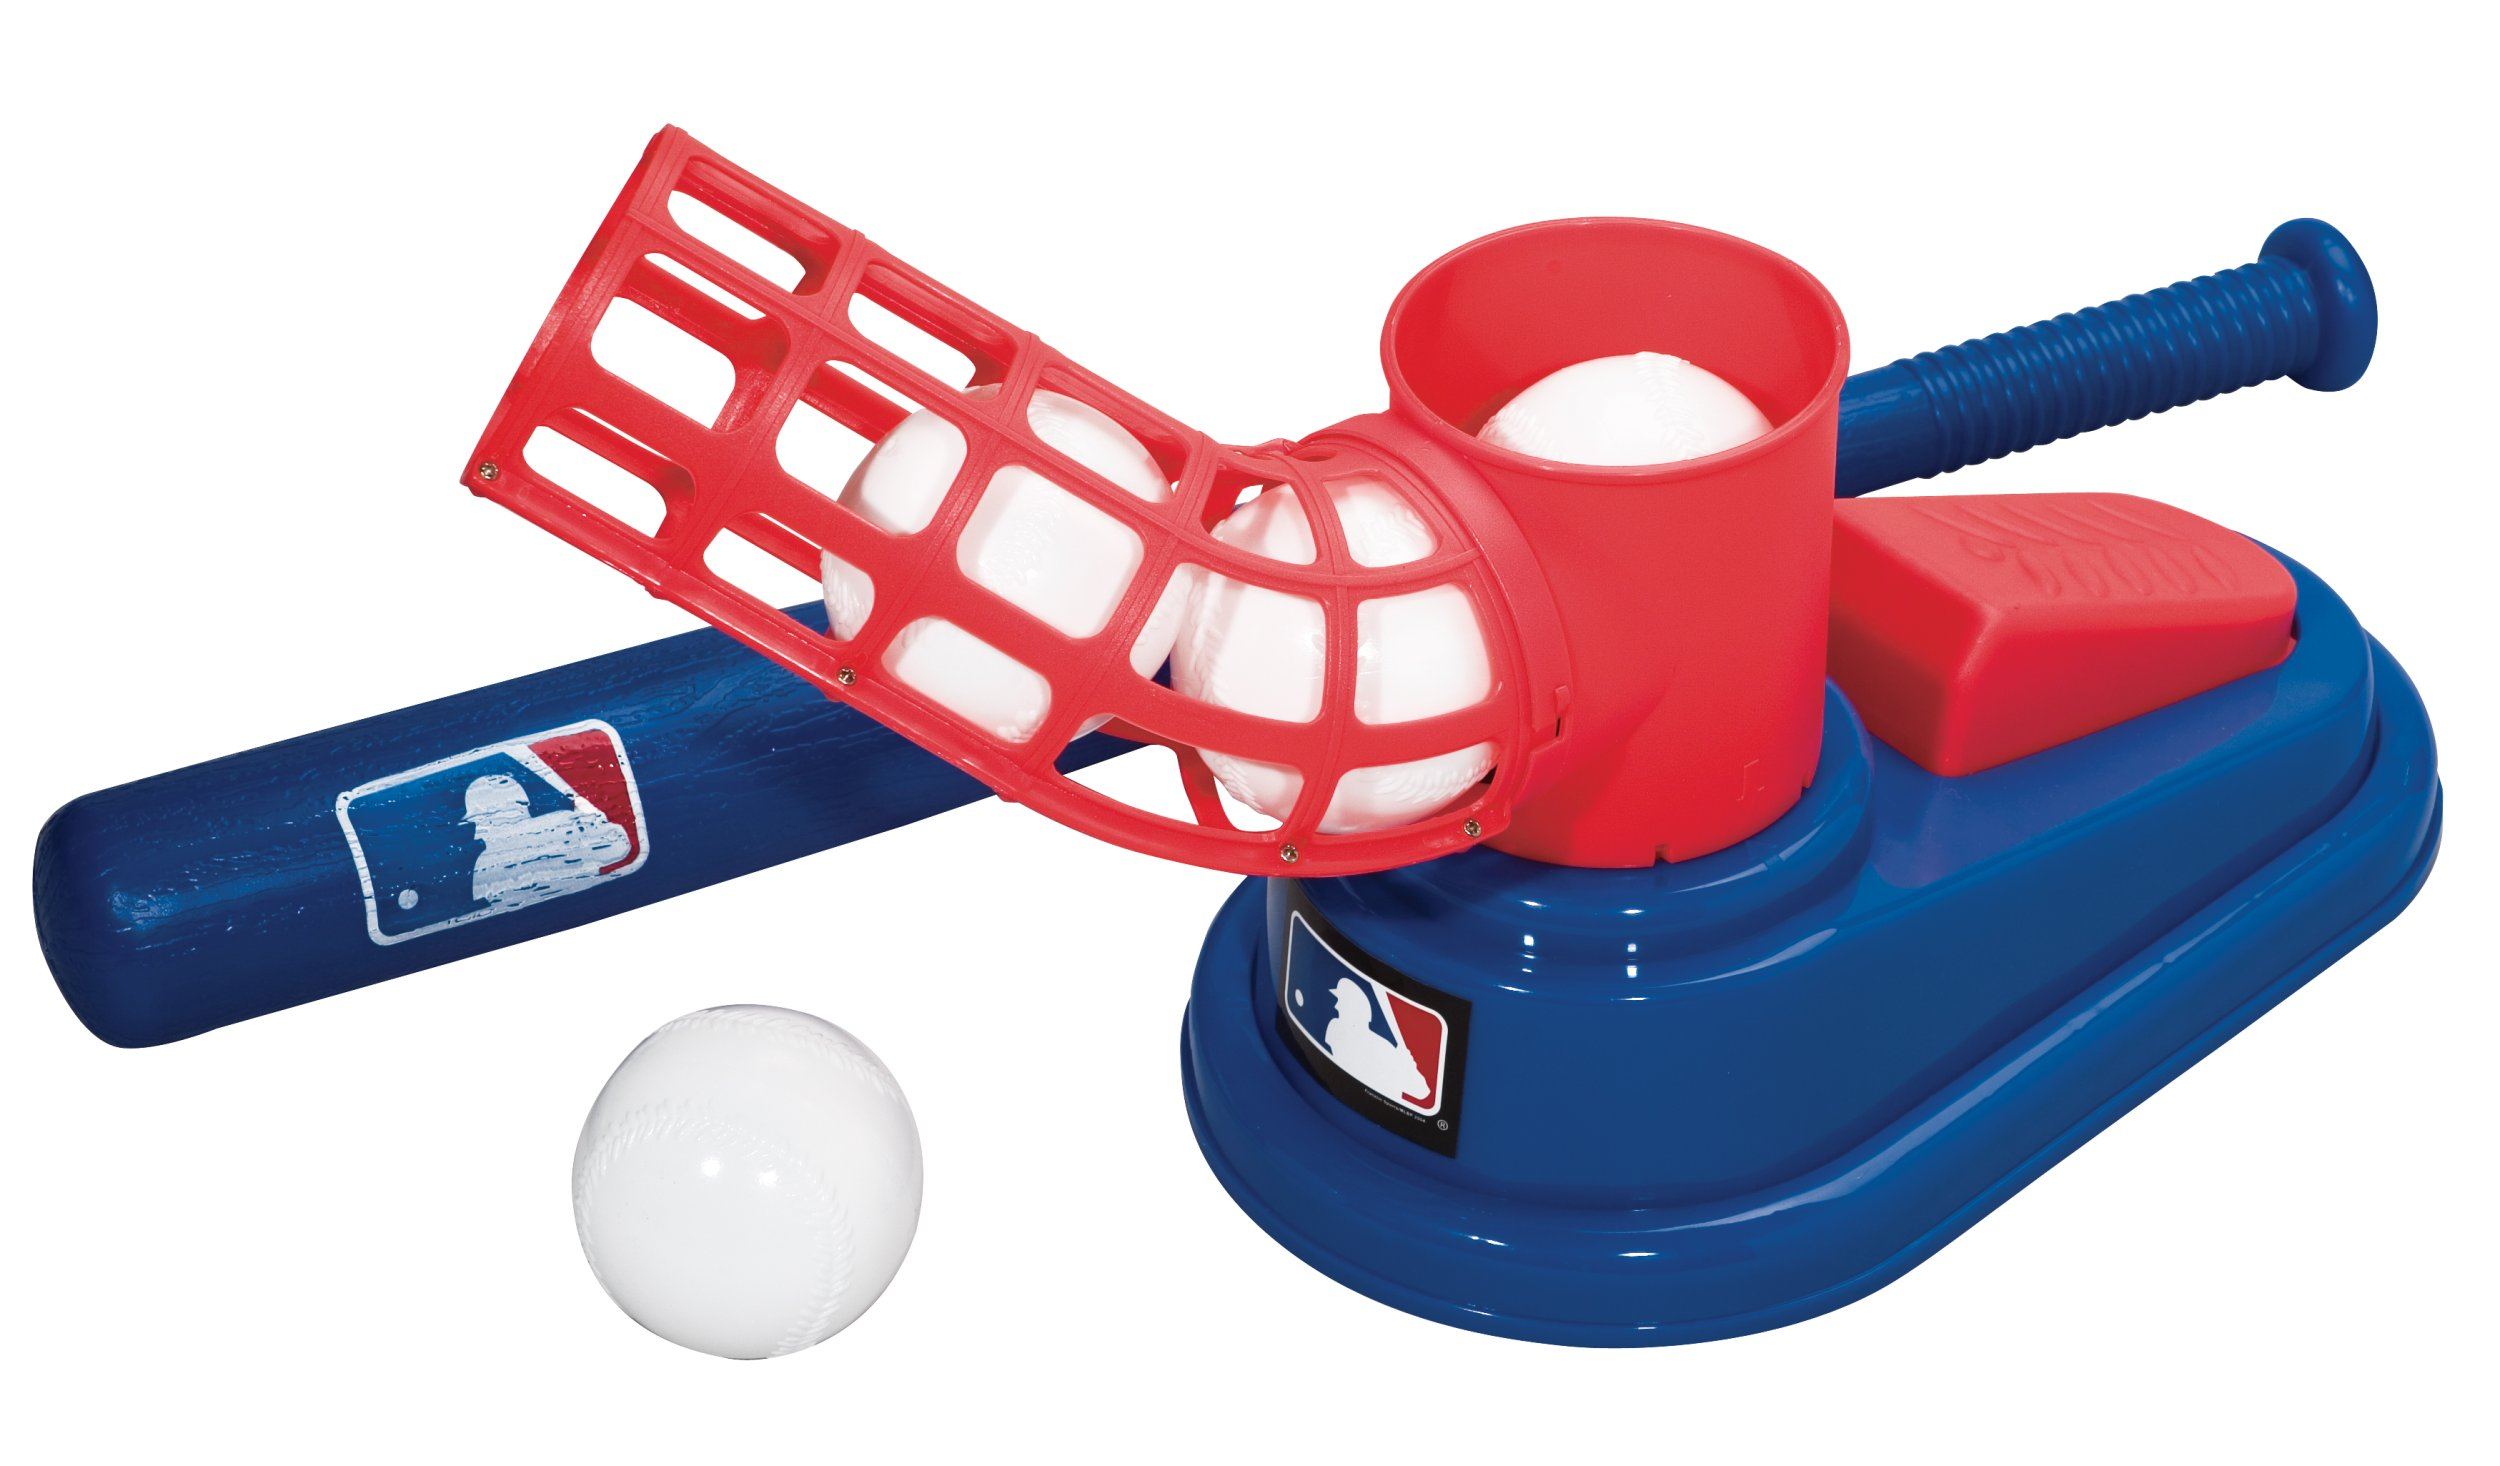 Franklin Sports MLB Baseball Pop A Pitch - Includes 25 Inch Collapsible Plastic Bat and 3 Plastic Baseballs by Franklin Sports